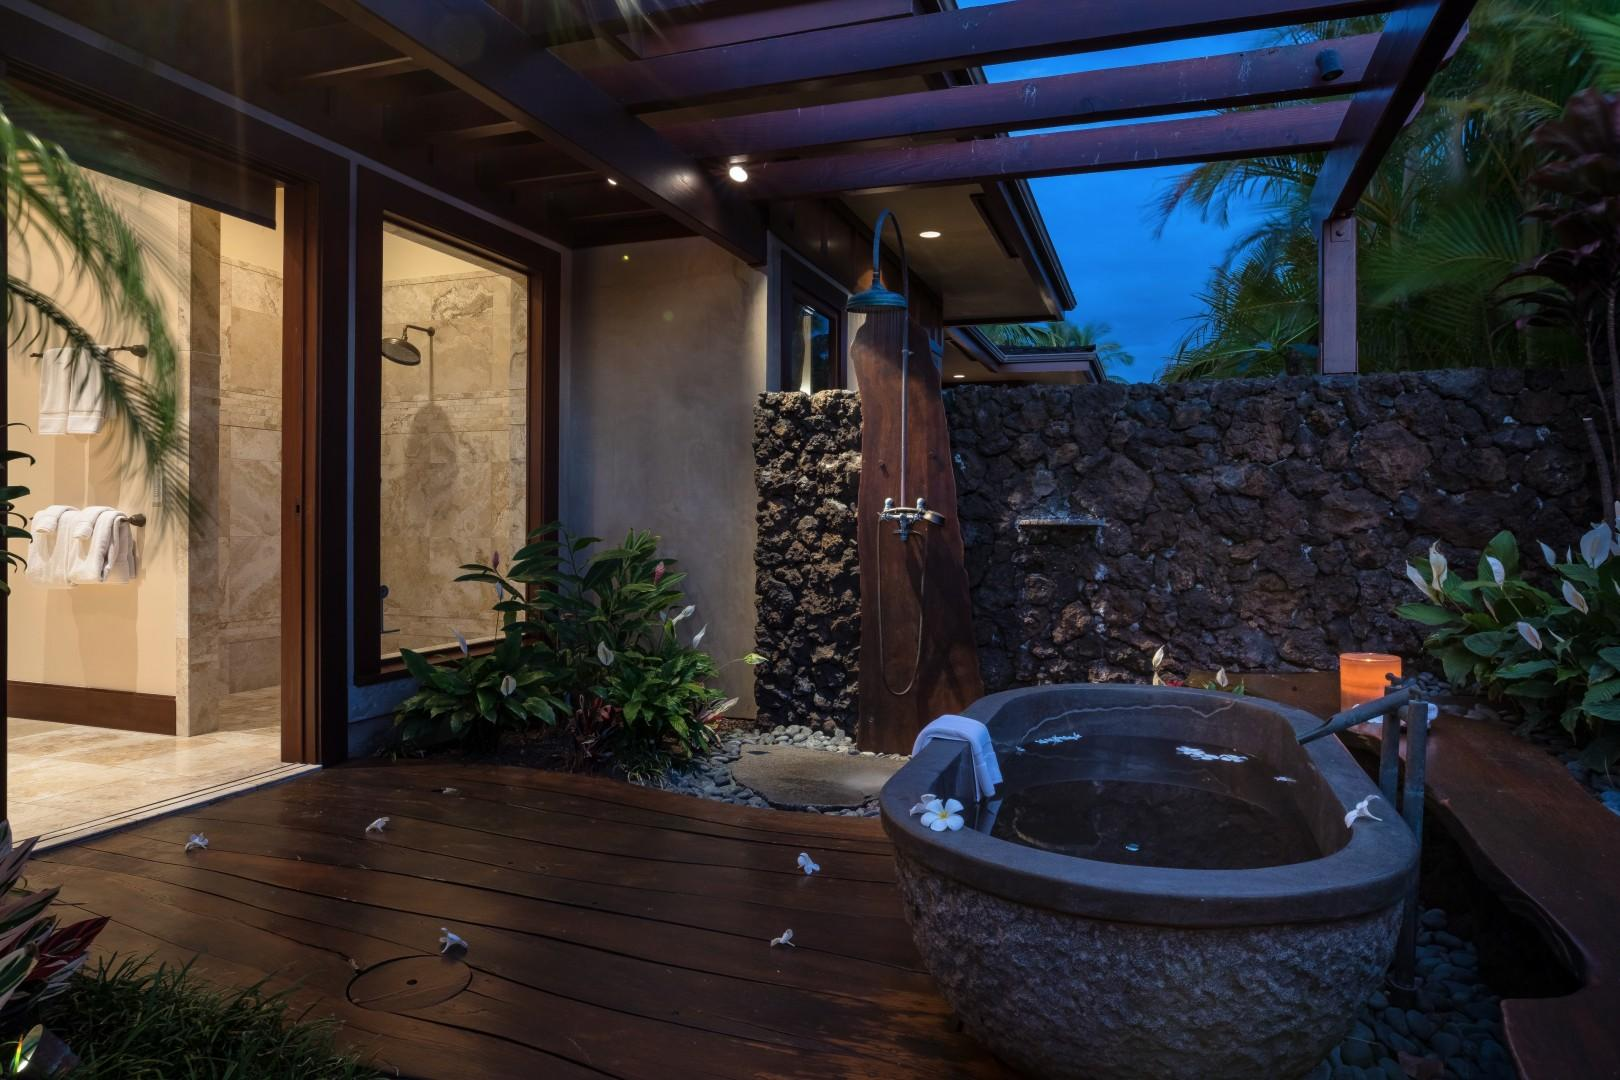 Outdoor soaking tub pictured in the evening. Soak in your own private paradise.